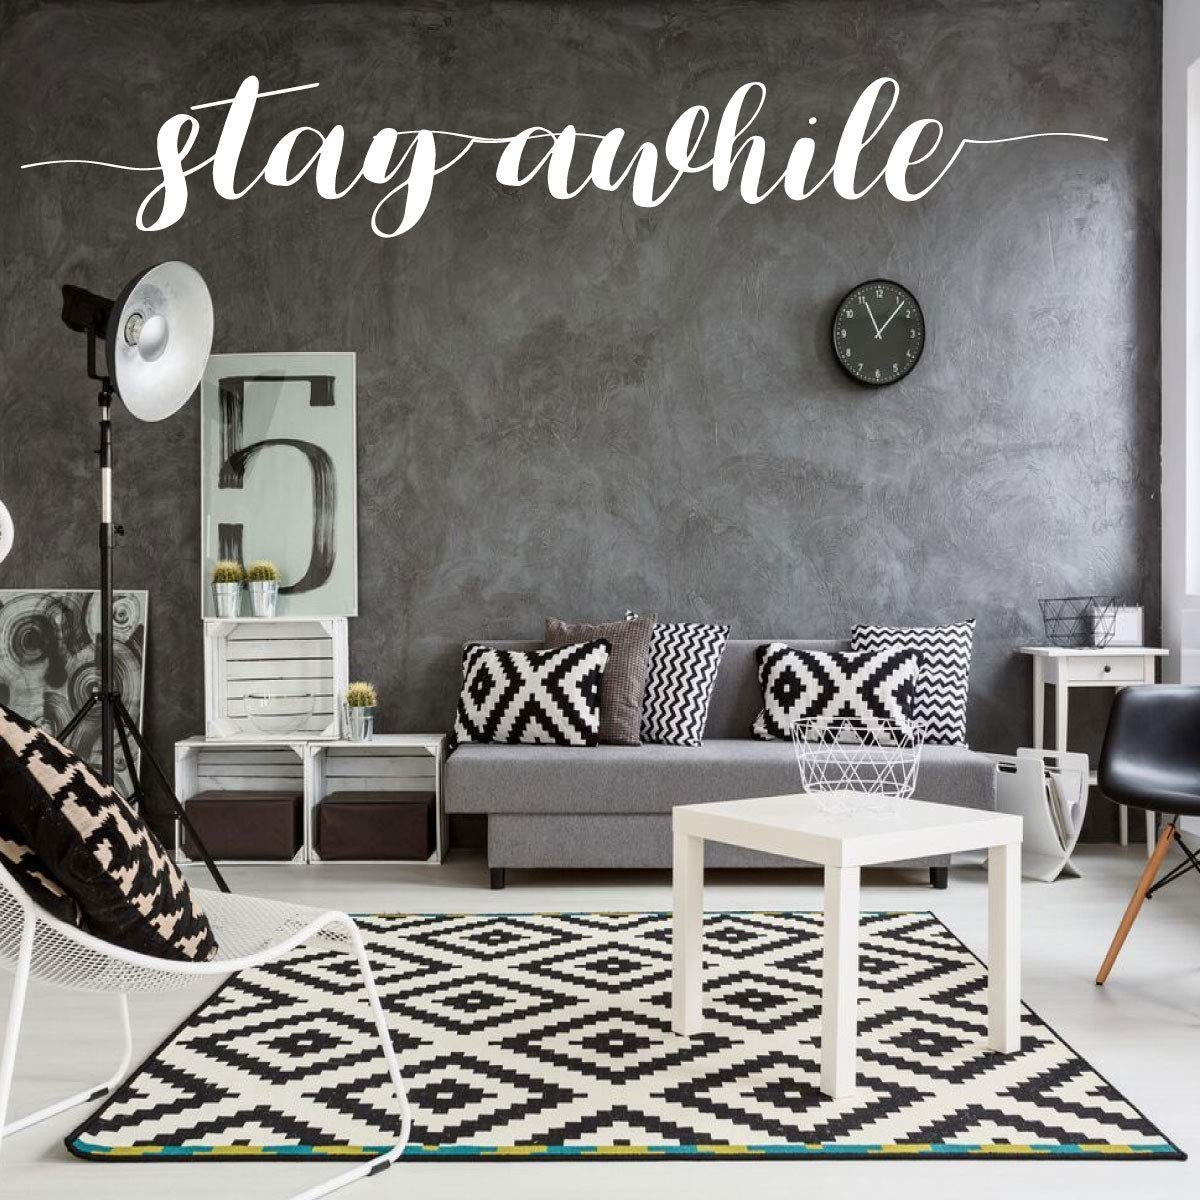 Amazon Com Stay Awhile Vinyl Wall Decor Lettering Great For Living Room Bedroom Bathroom Kitchen Office Red Gray Yellow Green Blue Pink Purple Other Colors Small Large Sizes Handmade